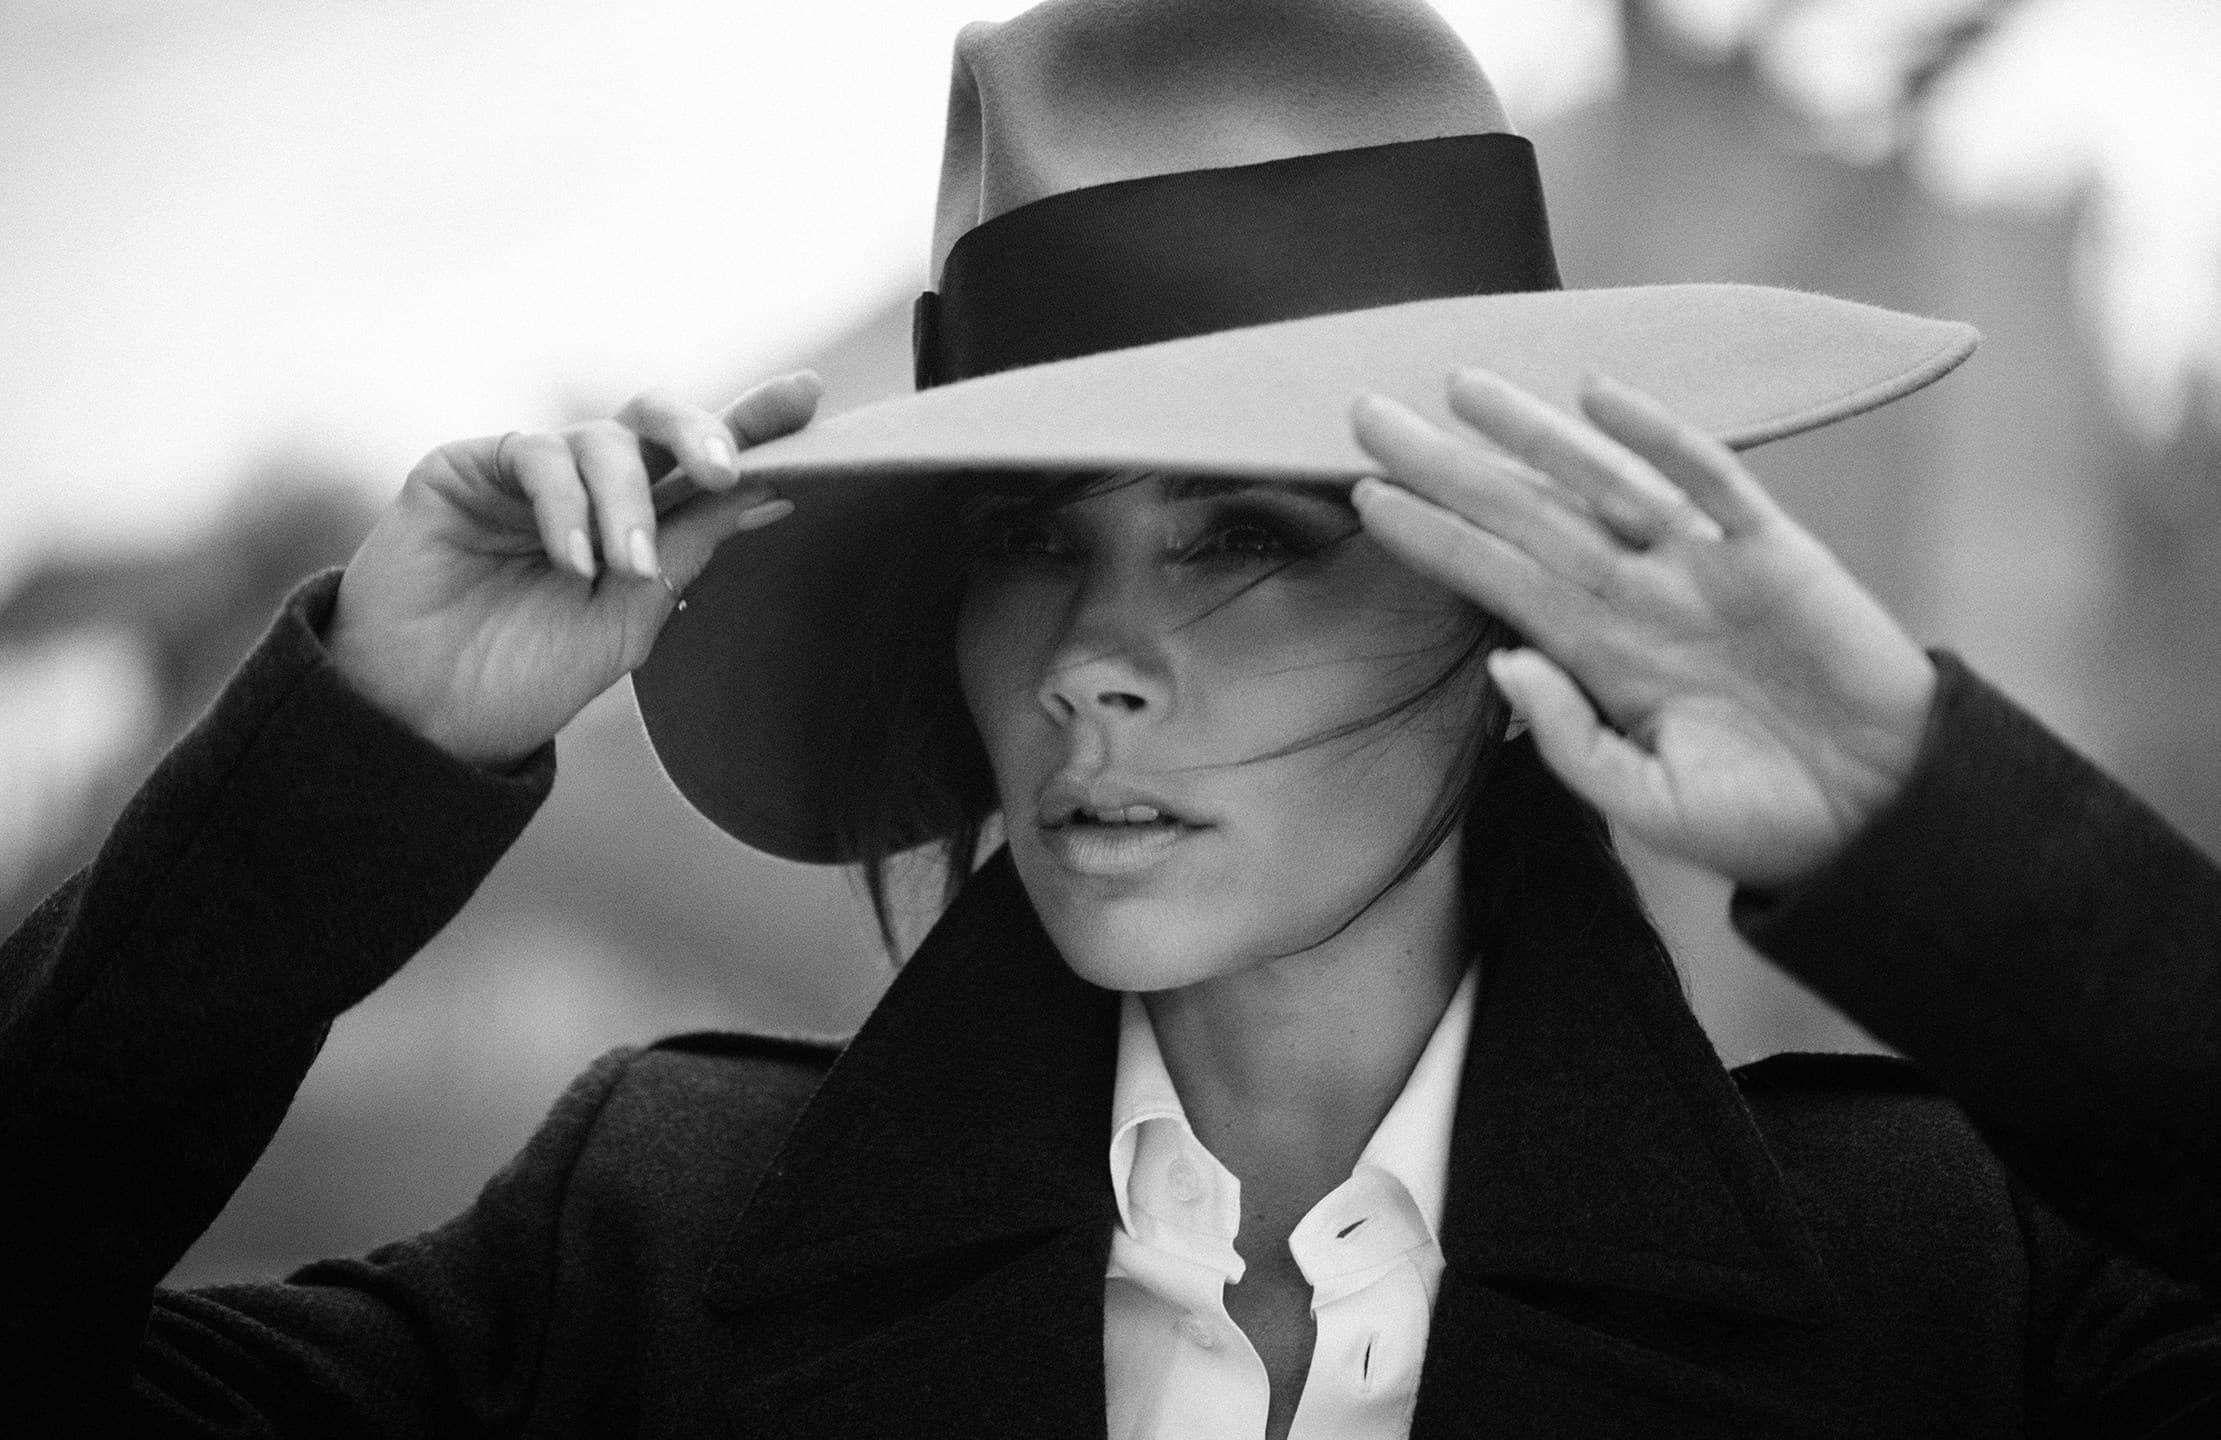 bw Victoria Beckham in a hat HD Image 13 2221x1440